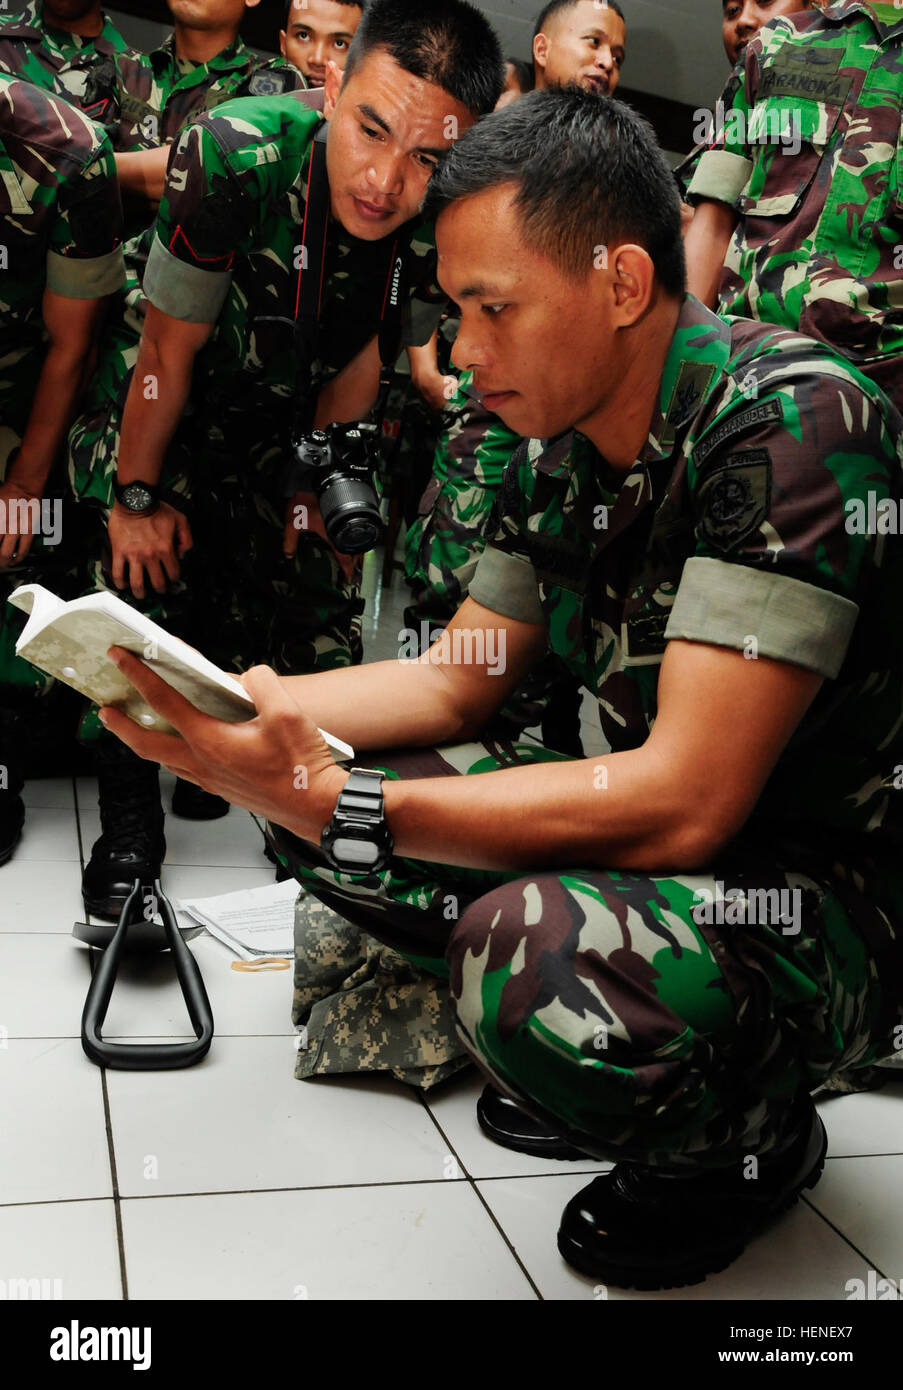 Leadership Of The Tentara Nasional Indonesia Angkatan Darat Tni Ad Flip Through The Army Level One Smart Book During The Hawaii Army National Guard State